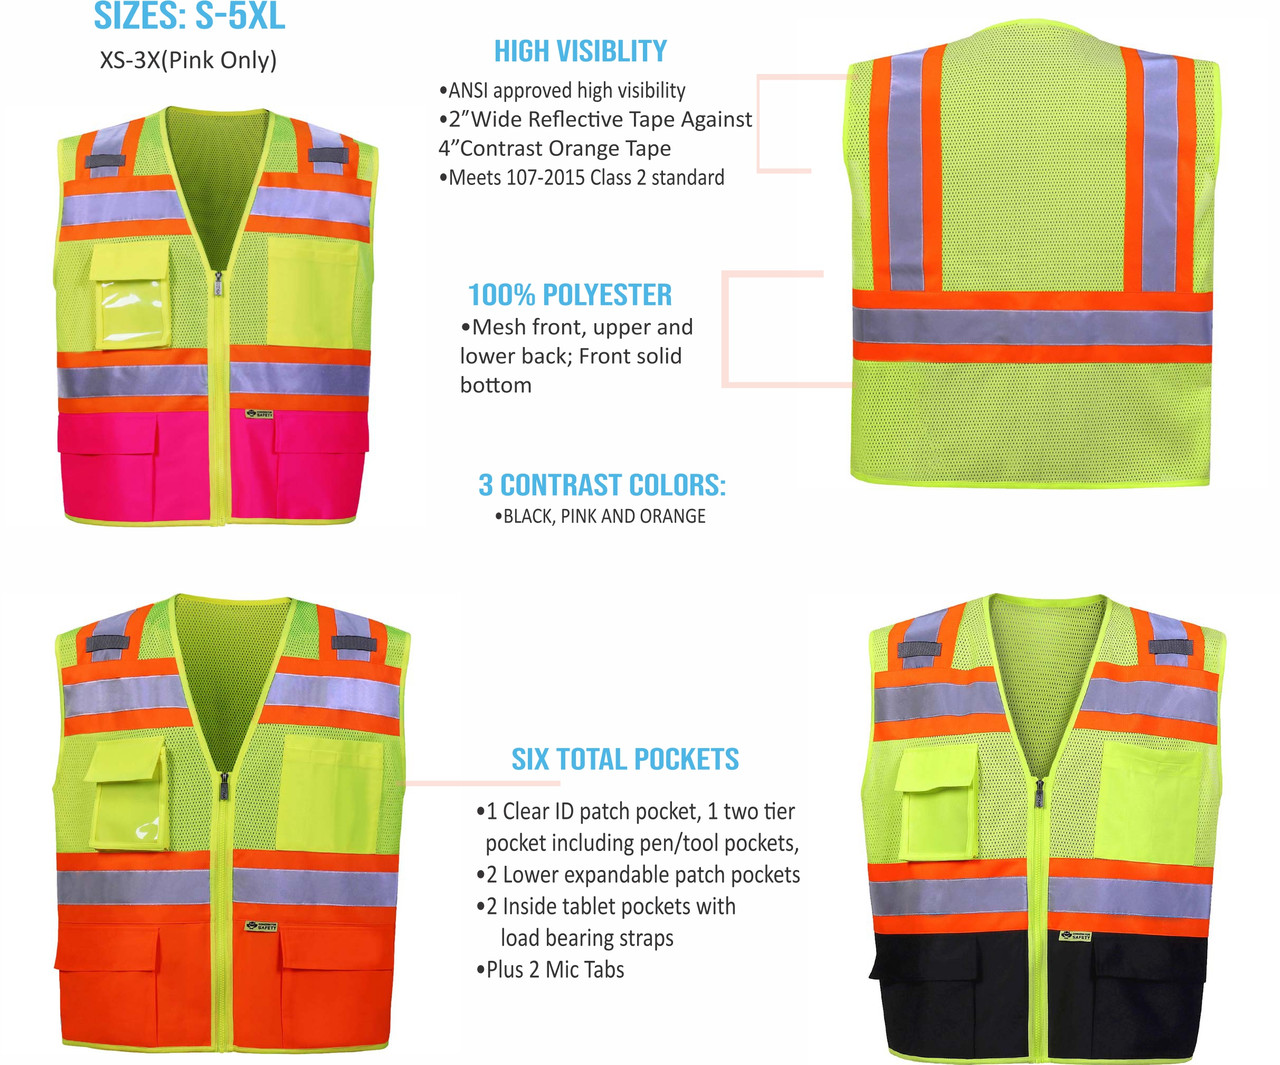 "2W 570 ANSI Approved High Visibility Class 2 Safety Vest is available in multiple colors and features 2"" wide Reflective stripes, Contrast Orange Tape, Meets 107-2015 Class 2 Standard, Mesh Front and solid bottom.  Has 6 pockets and 2 mic tabs."